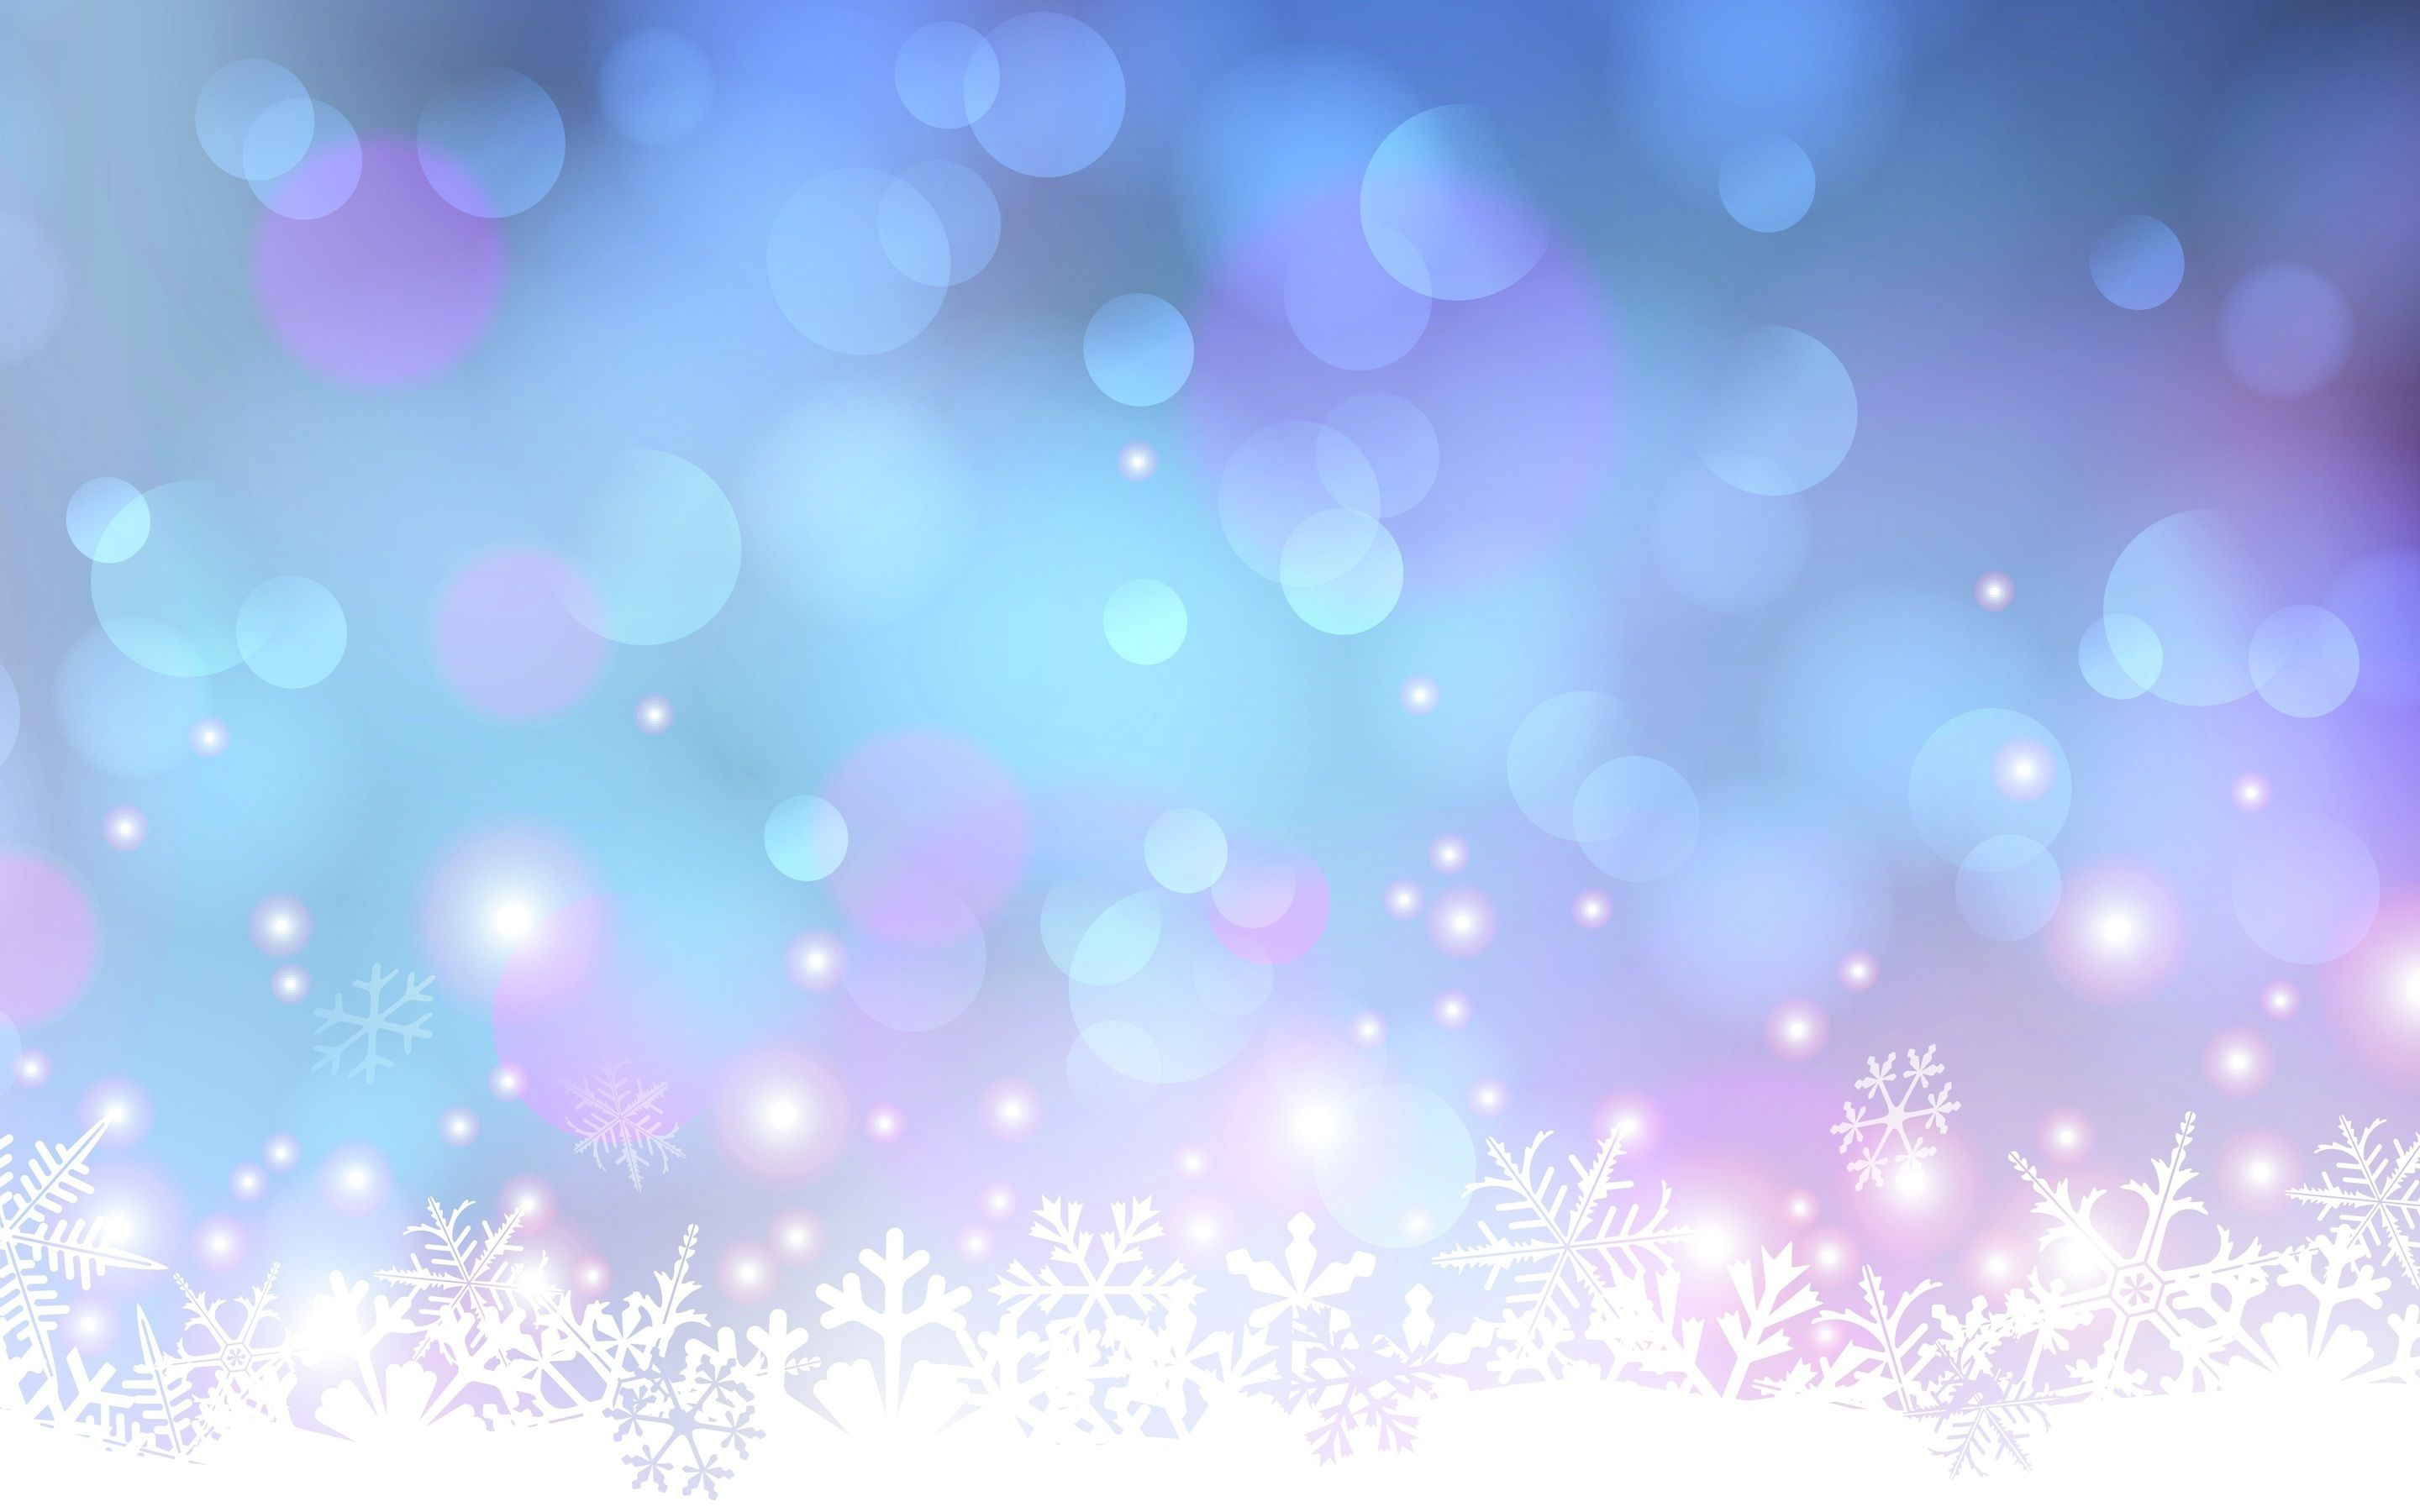 Free Download Christmas Backgrounds Wallpapers Photos Pictures Images 2880x1800 For Your Desktop Mobile Tablet Explore 58 Christmas Background Wallpapers Free Christmas Wallpapers Christmas Desktop Free Holiday Wallpaper Christmas Desktop